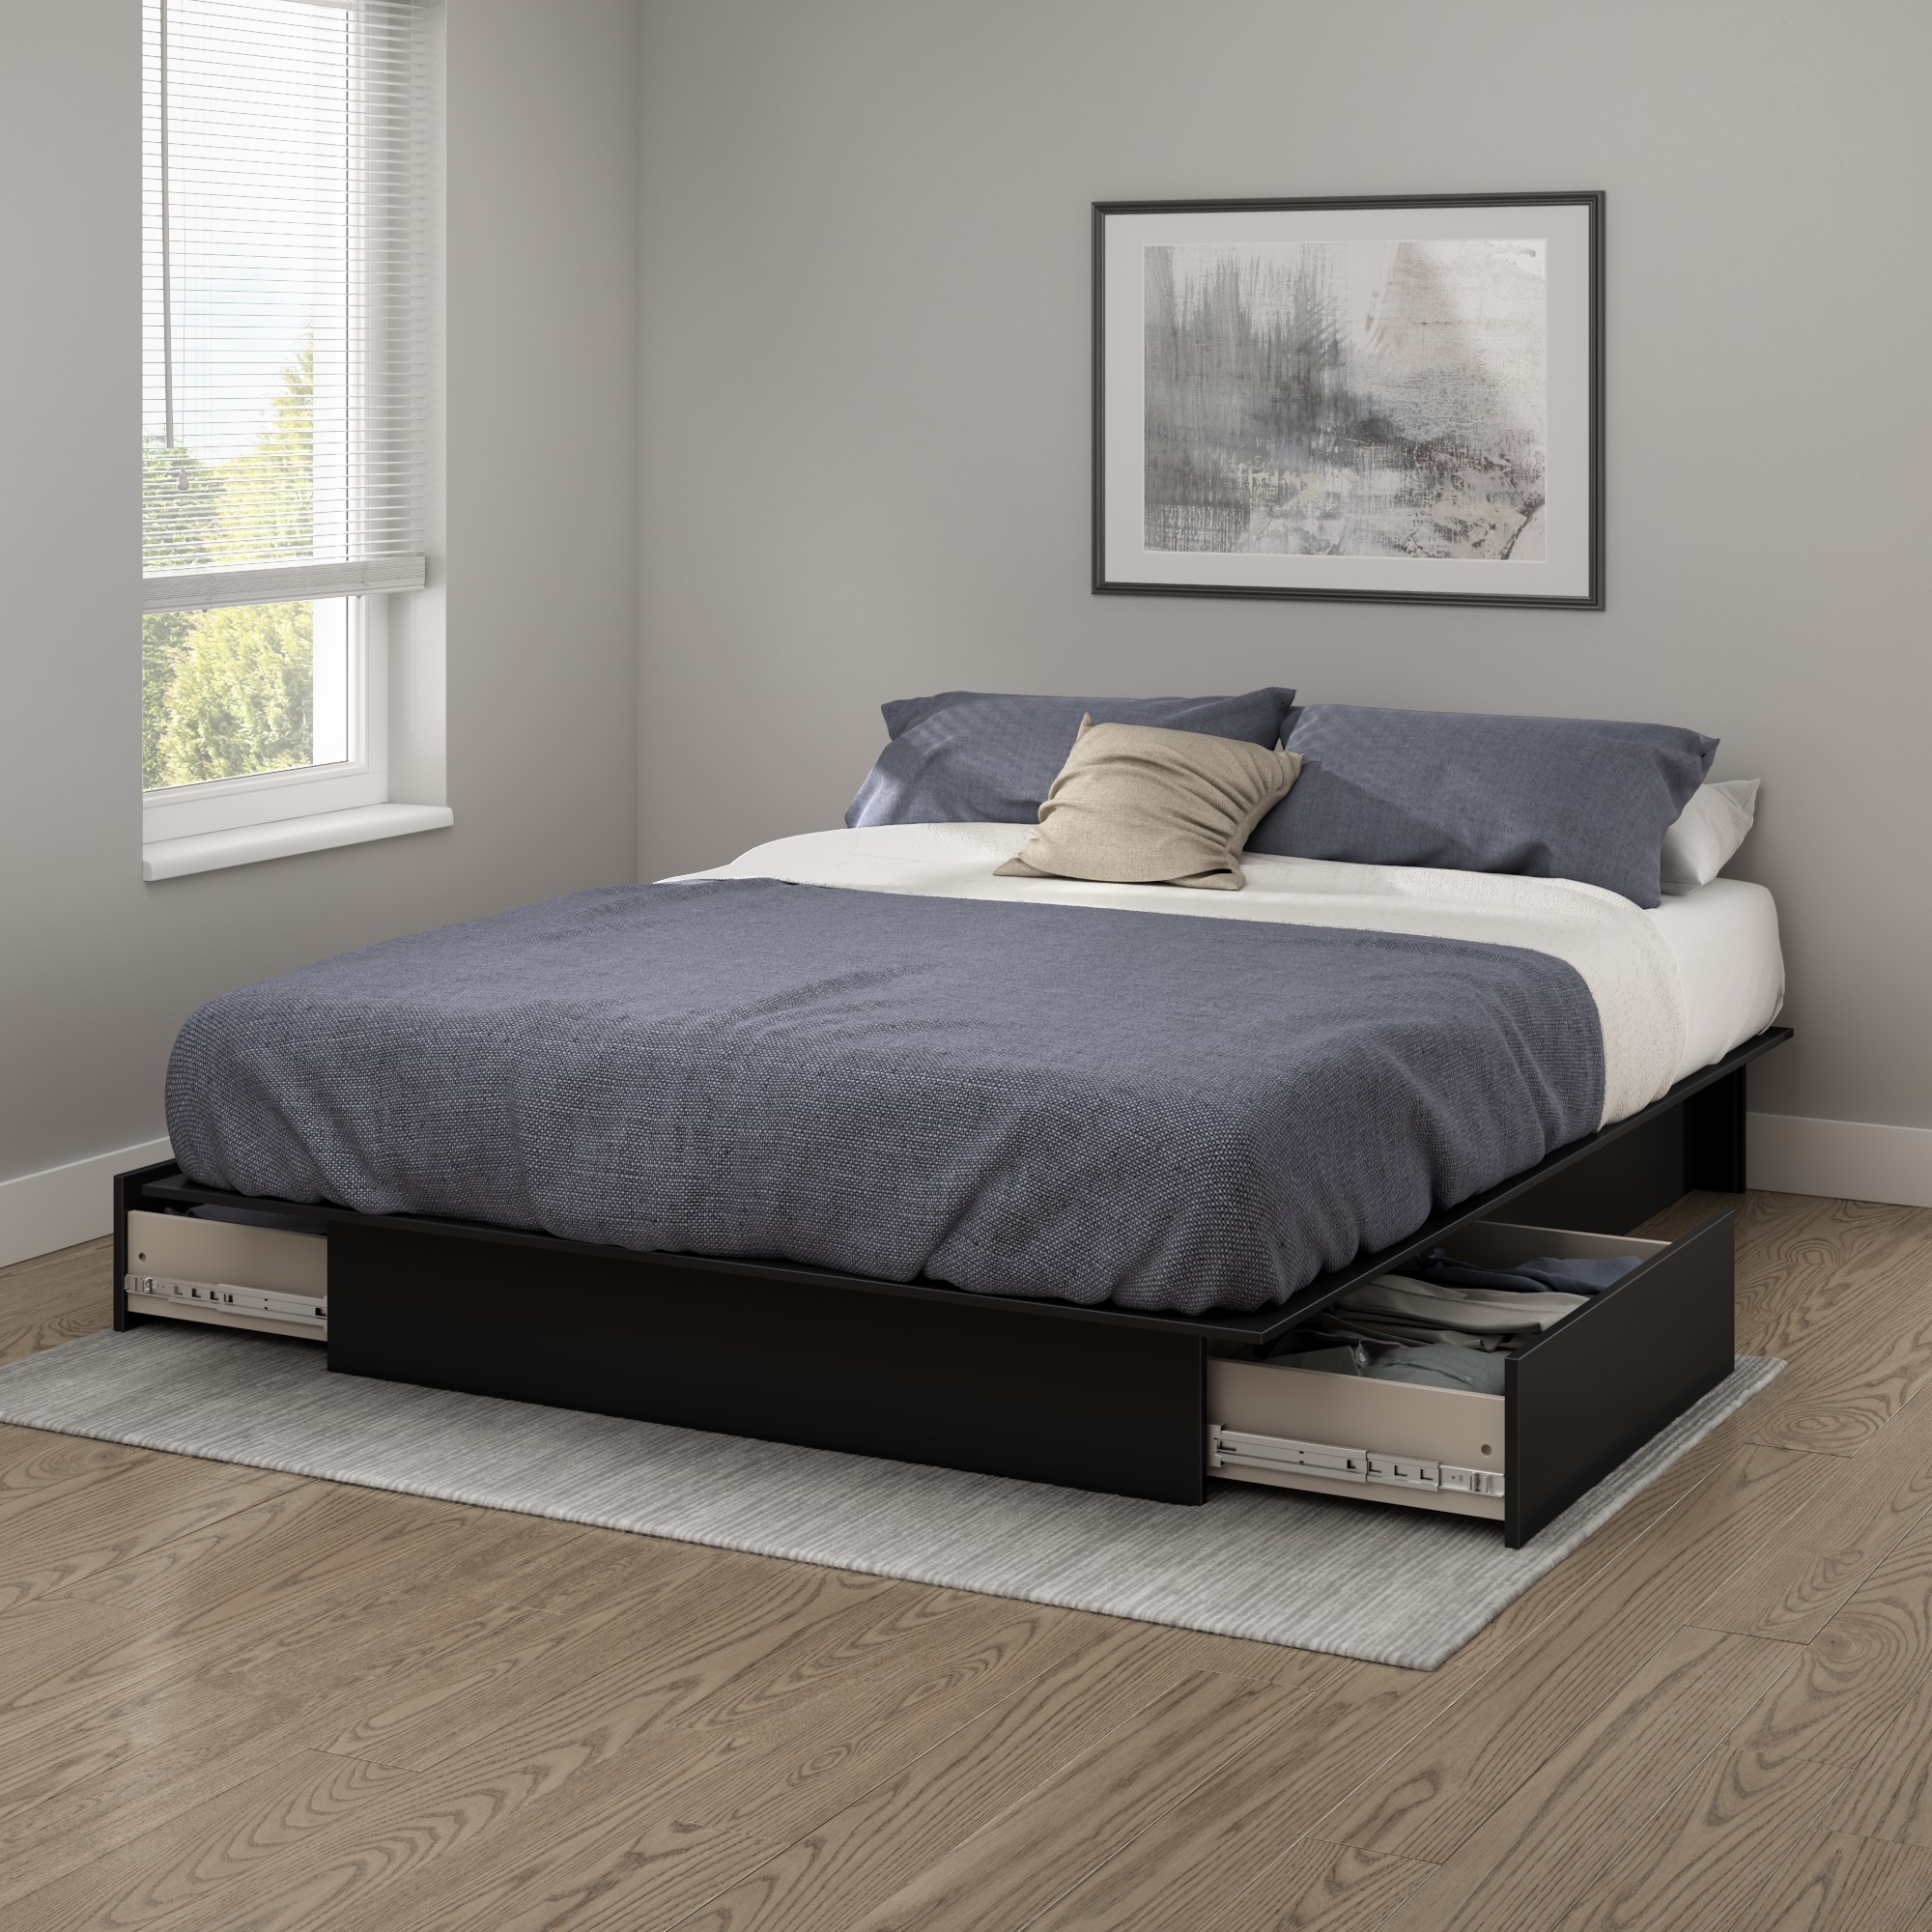 South Shore SoHo Full/Queen Storage Platform Bed and Headboard